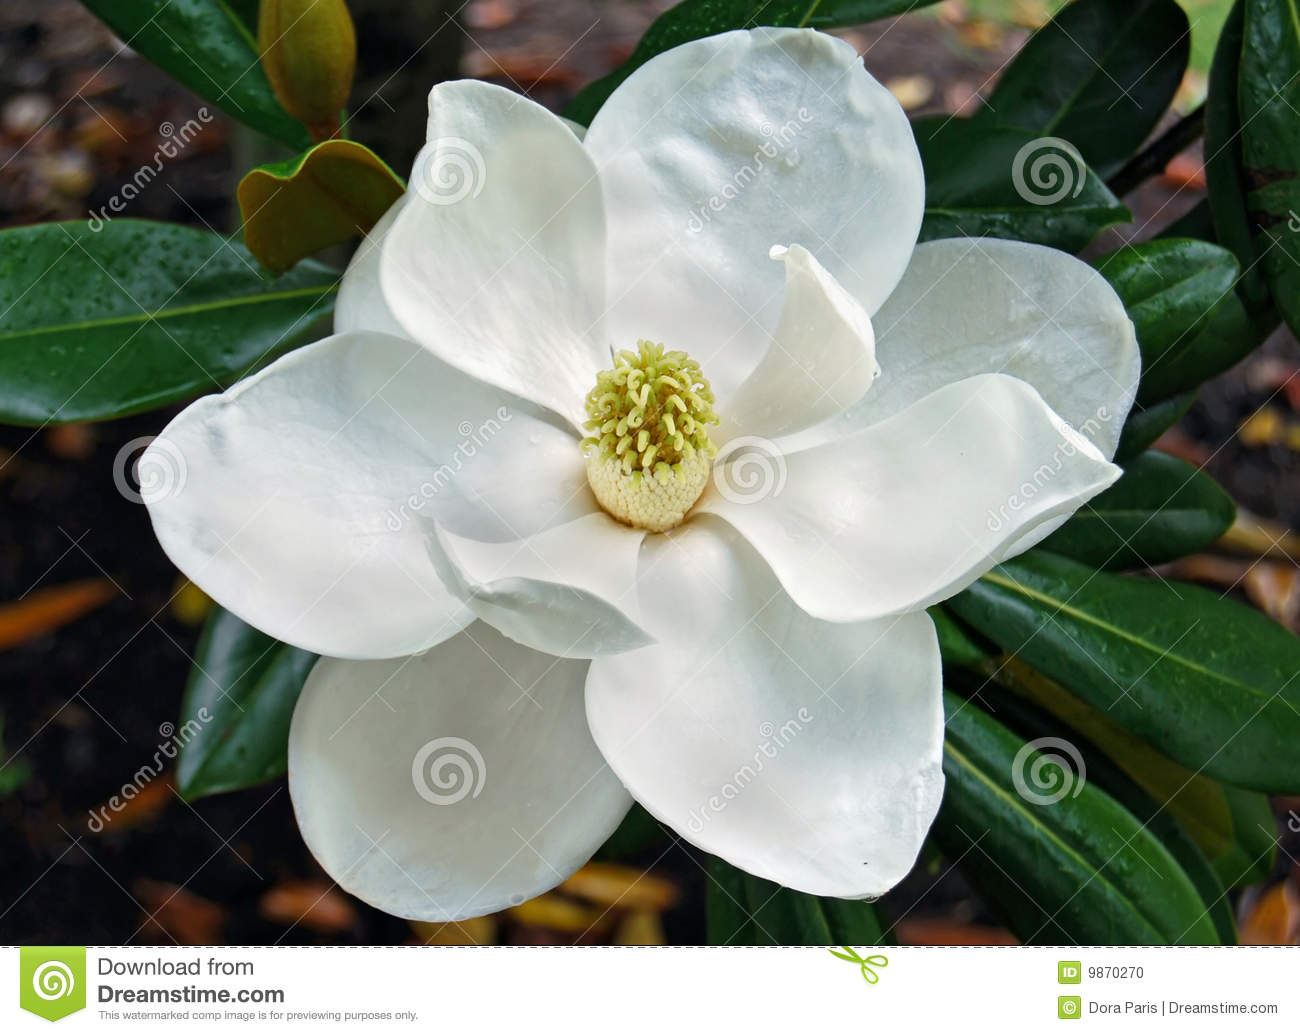 Foto De Stock Flor Do Magnolia Image9870270 as well E8 B7 AF E6 98 93 E6 96 AF E5 AE 89 E9 82 A3 as well Magnolia Wellness 420 Medical Cannabis Farmers Market Back By Popular Demand furthermore 5533866990 together with Spotted Cosco Carries Shells Appomattox Hull. on magnolia louisiana